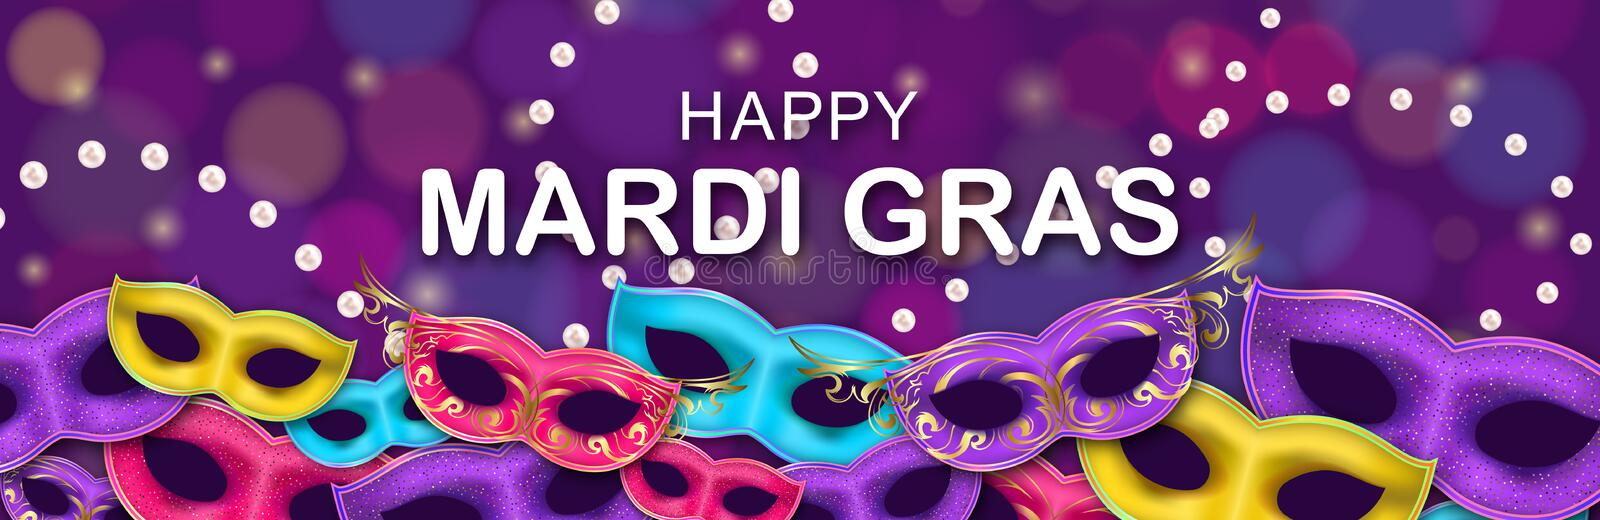 Carnival Night Party banner with a Lettering. Masquerade Masks on patterned backdrop. Mardi Gras invitation card royalty free illustration